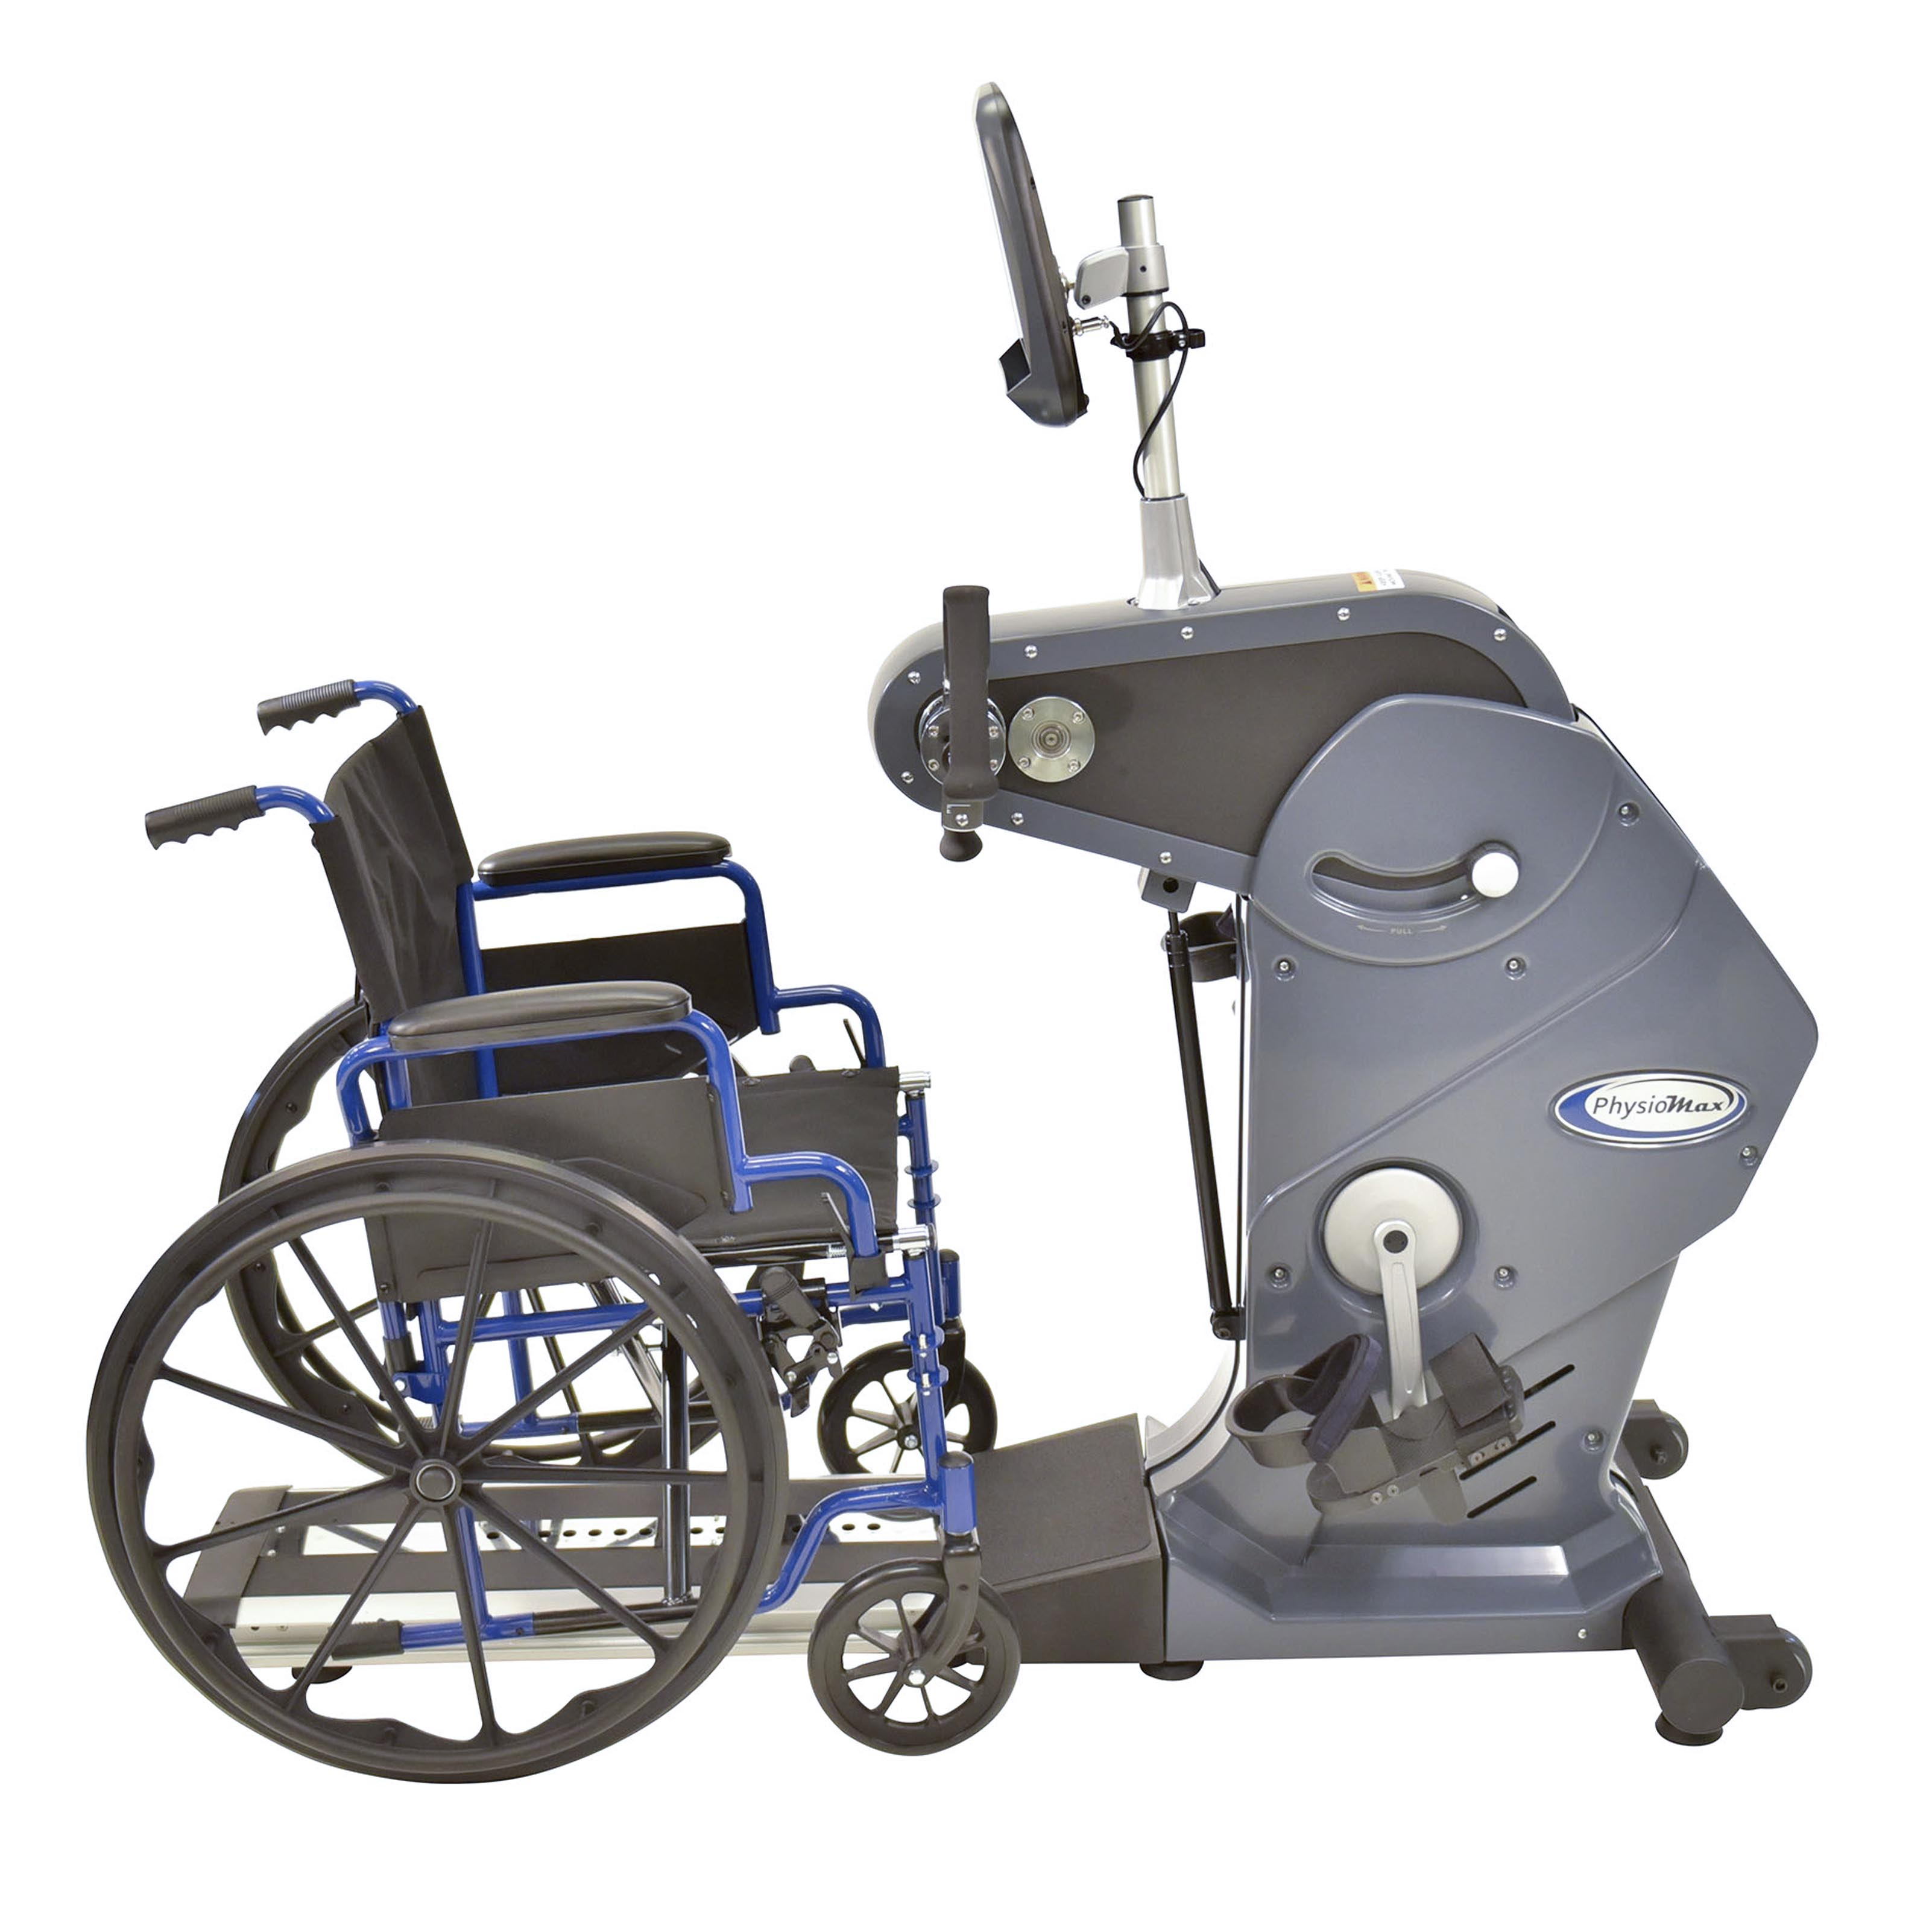 PhysioMax ADA Wheelchair